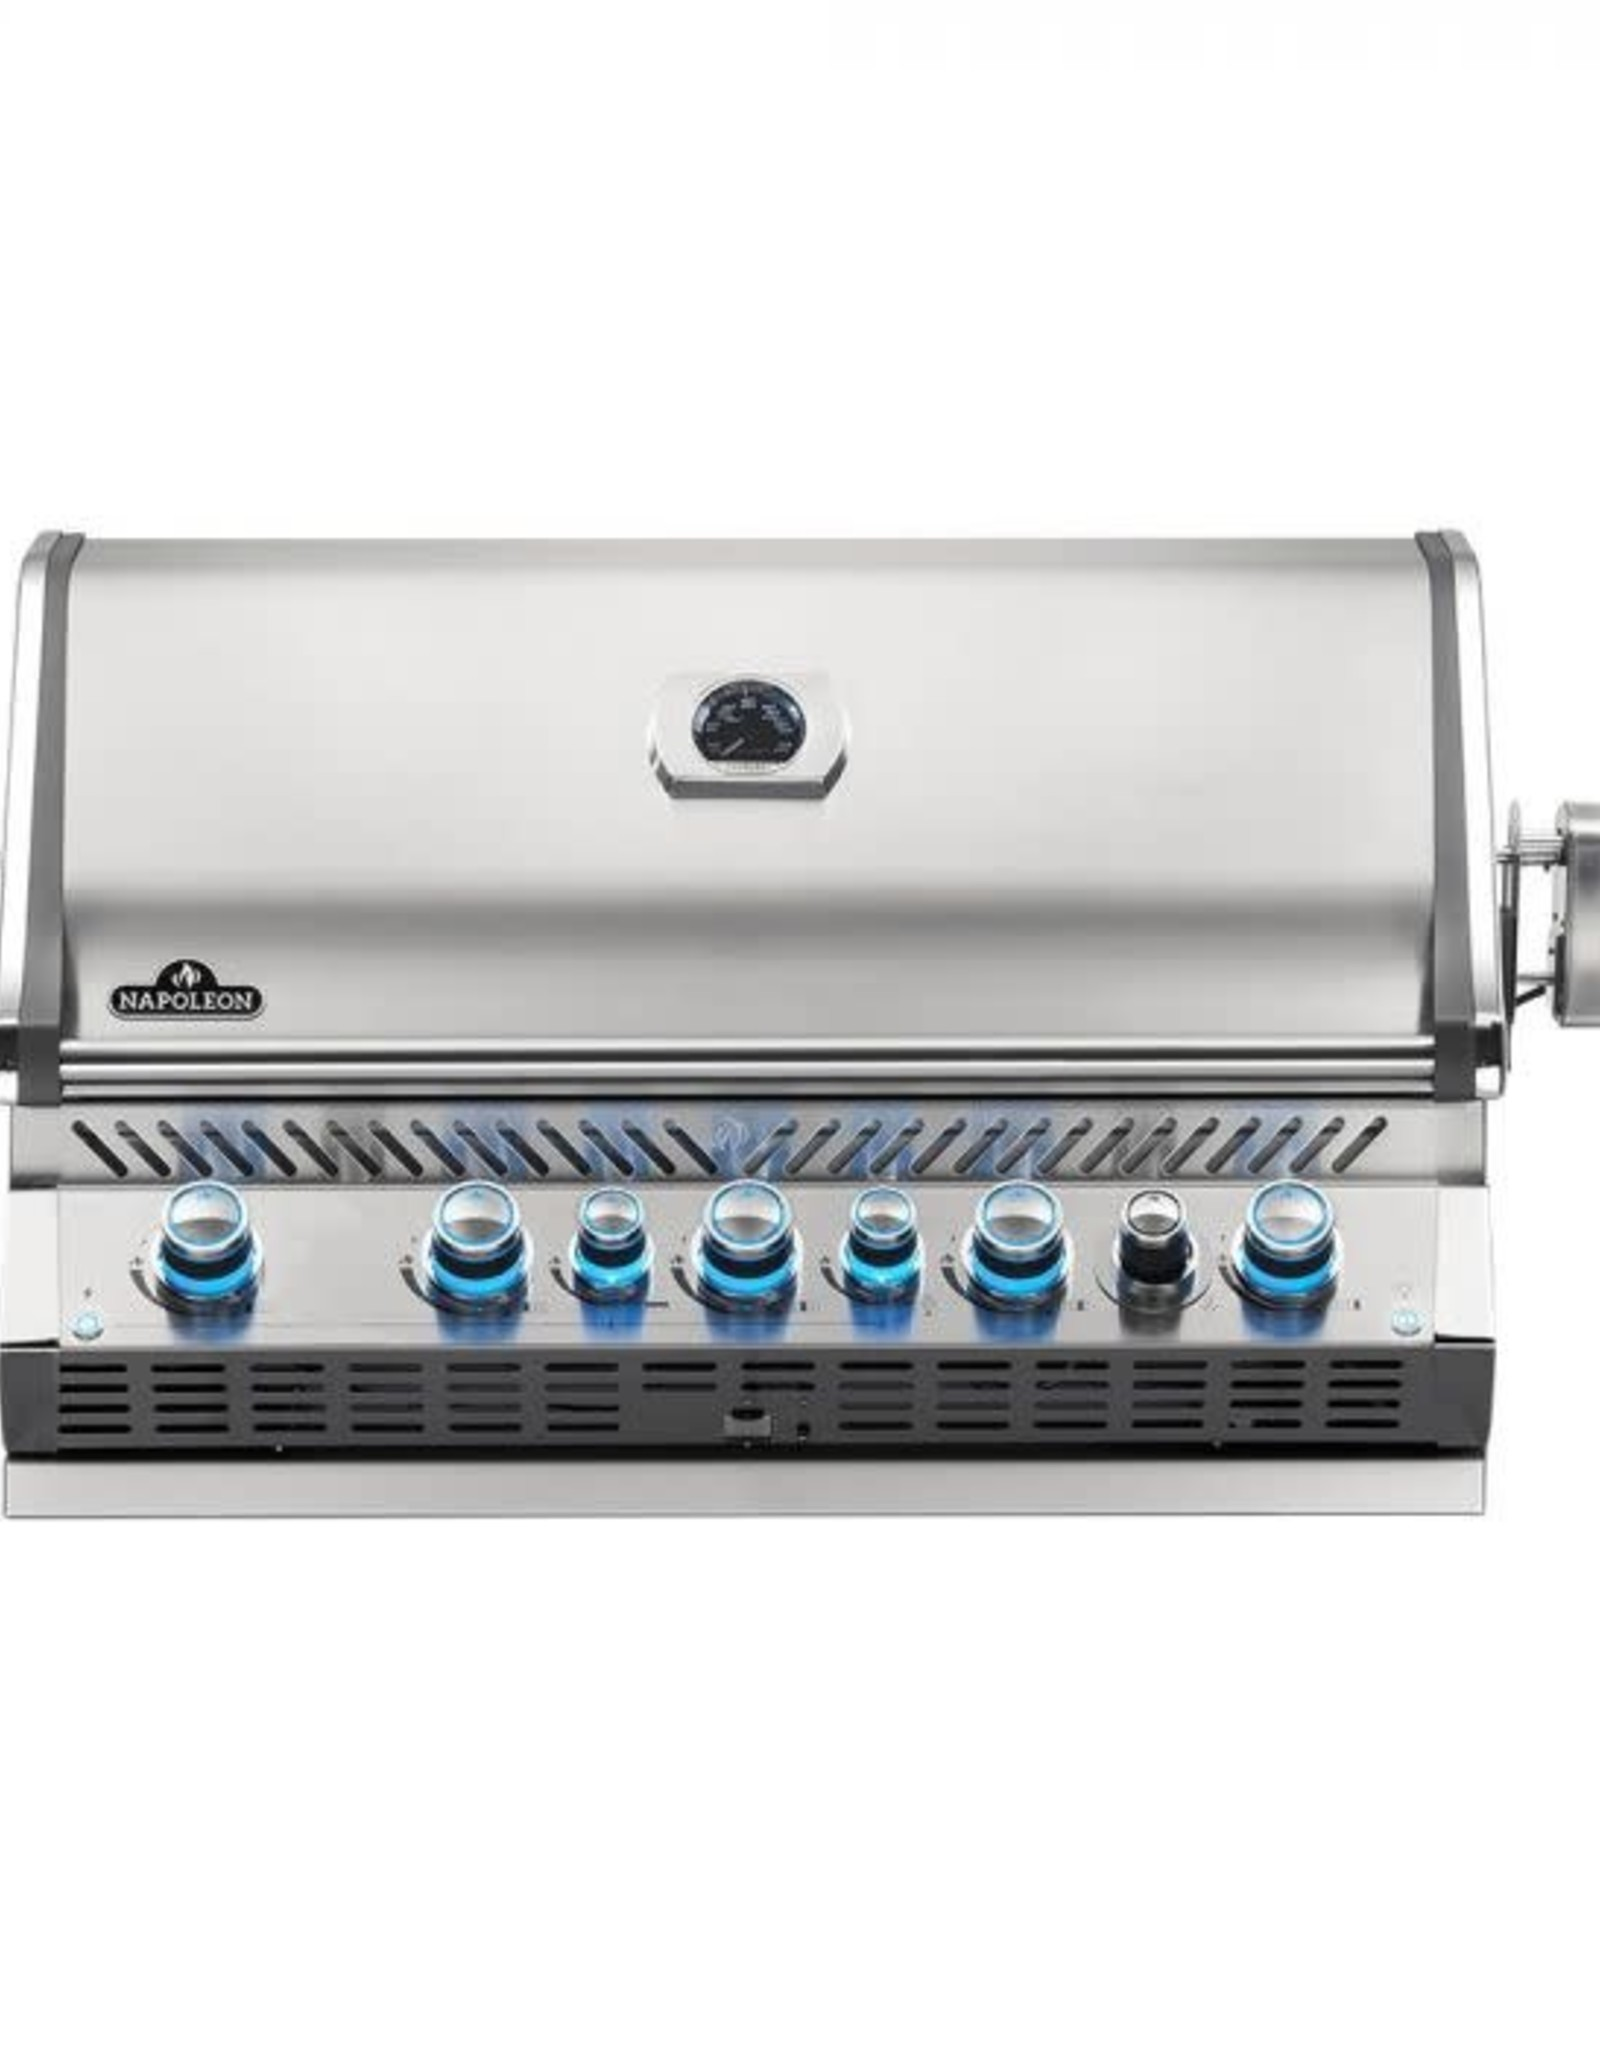 Napoleon Napoleon Prestige PRO 665 Built-in Propane Gas Grill with Infrared Rear Burner and Rotisserie Kit - BIPRO665RBPSS-3